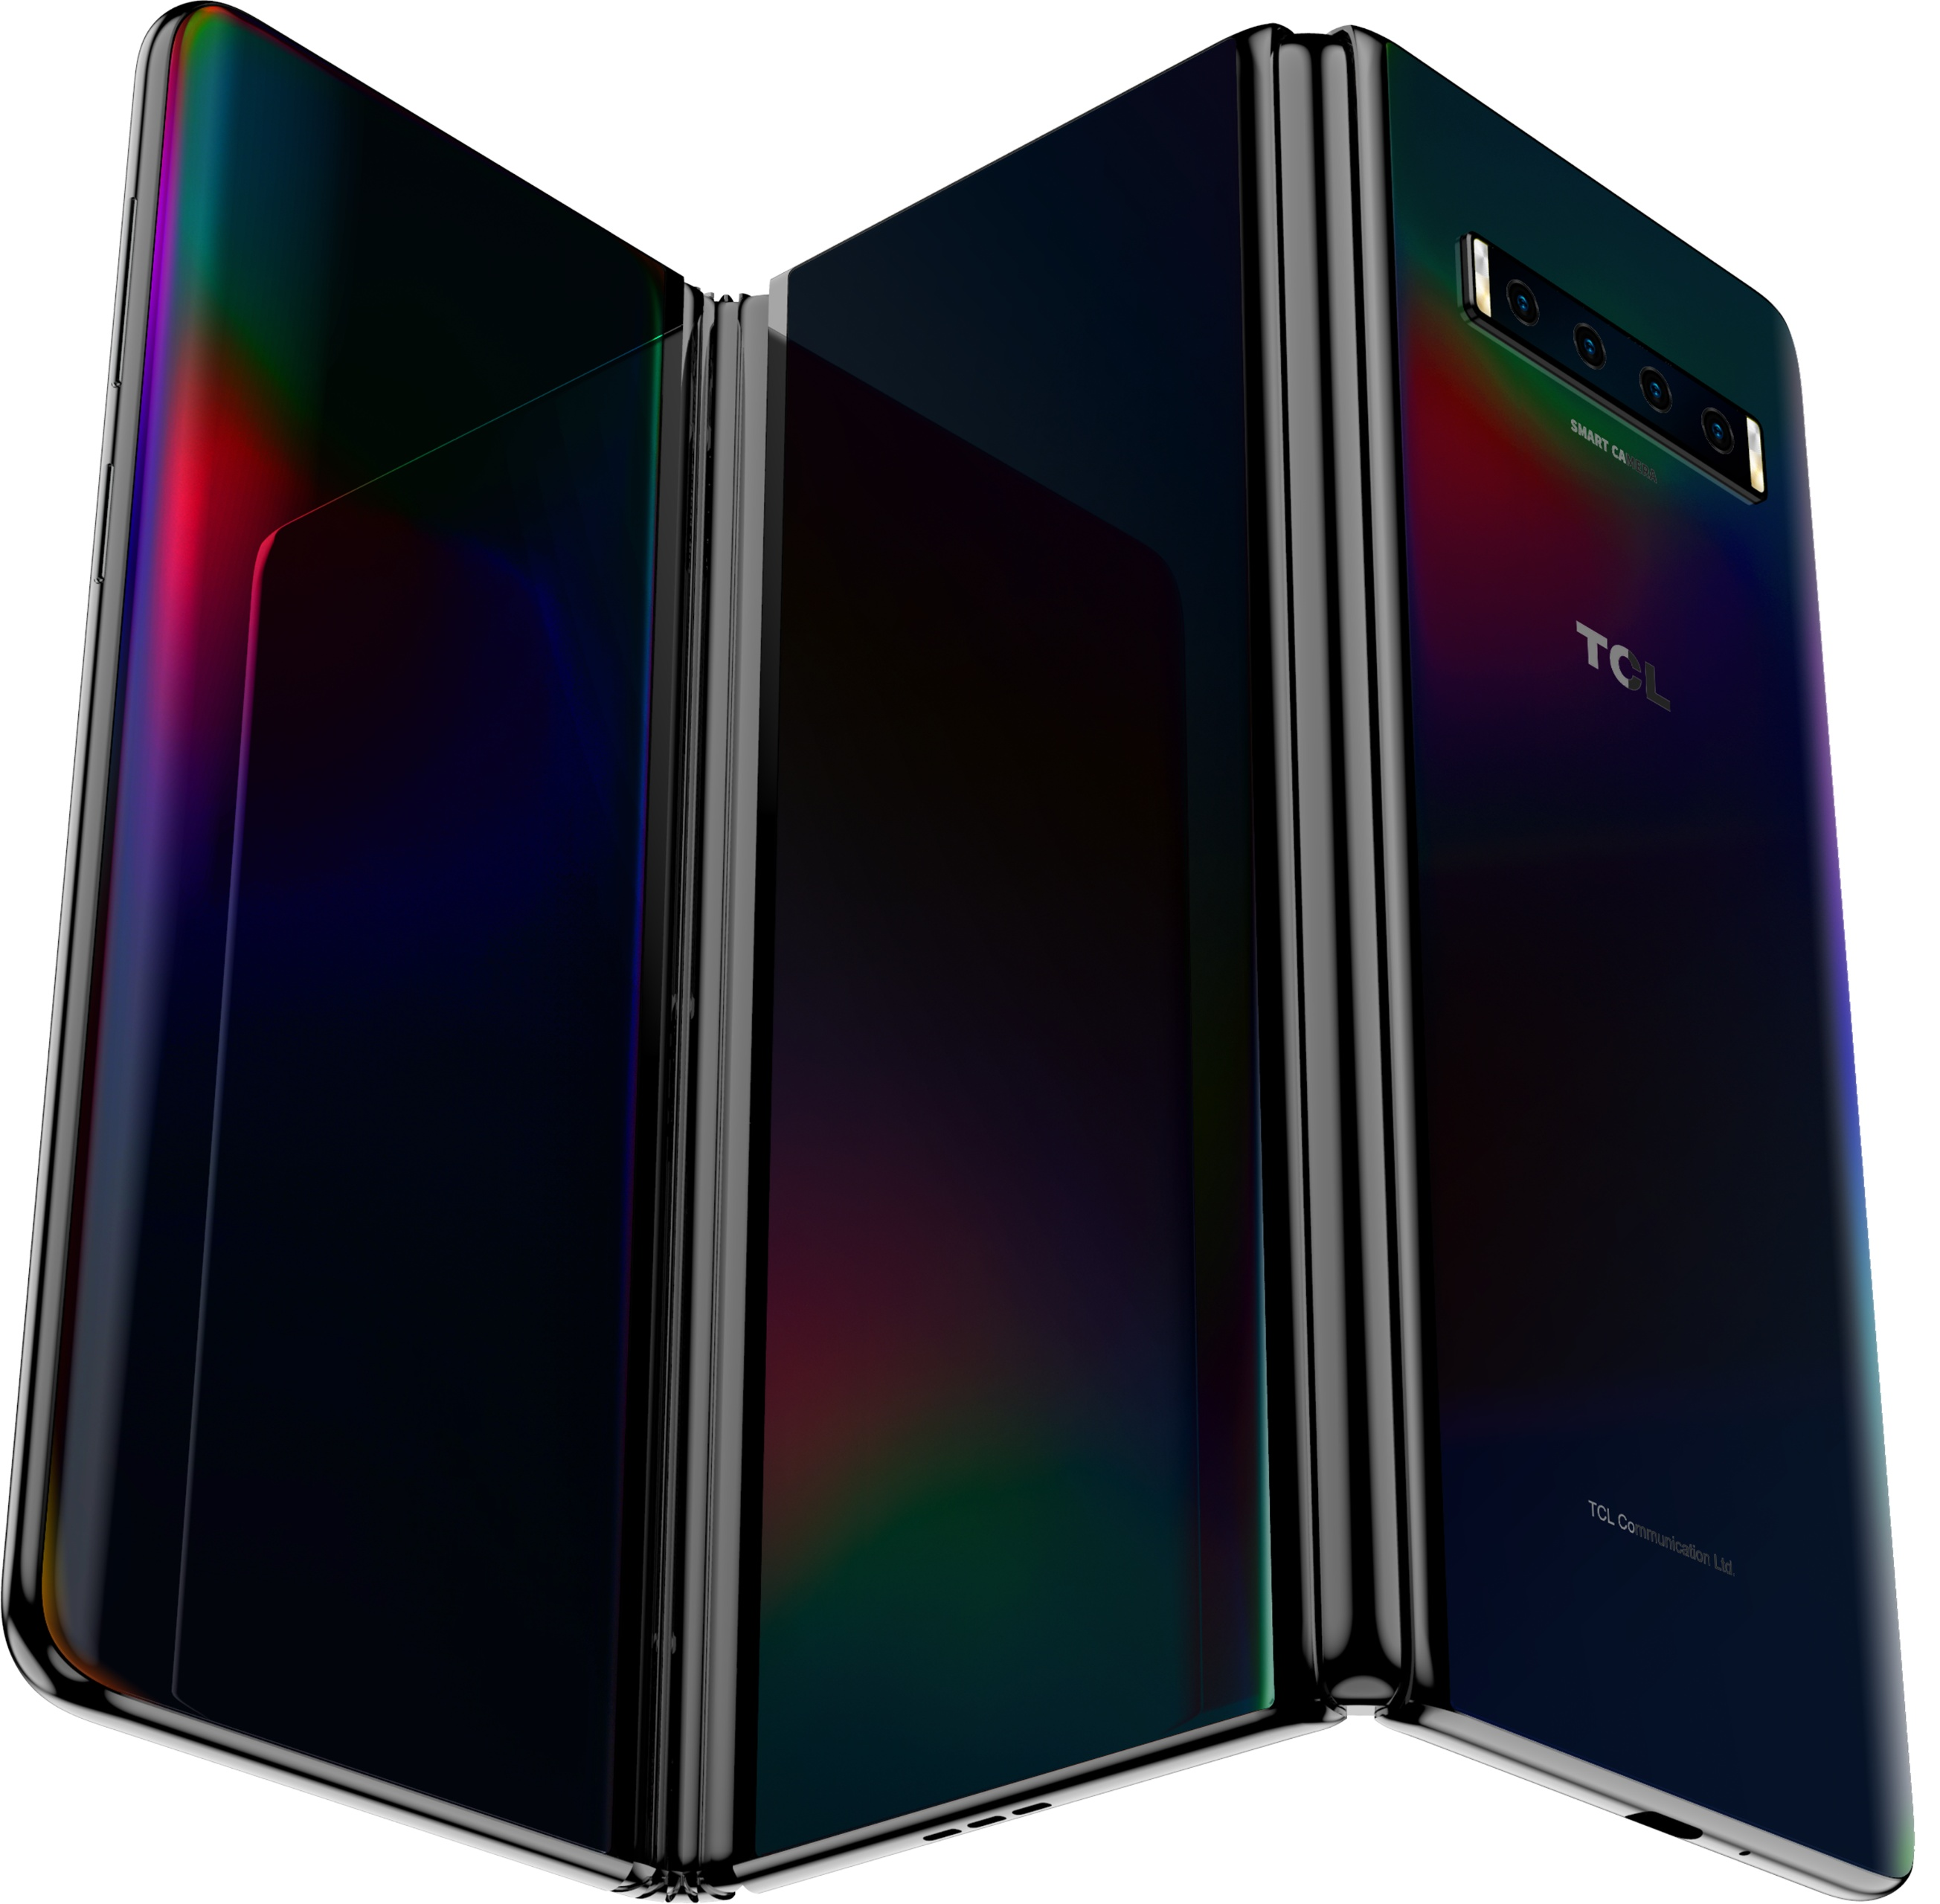 TCL showcases a rollable concept smartphone alongside a tri-fold foldable device